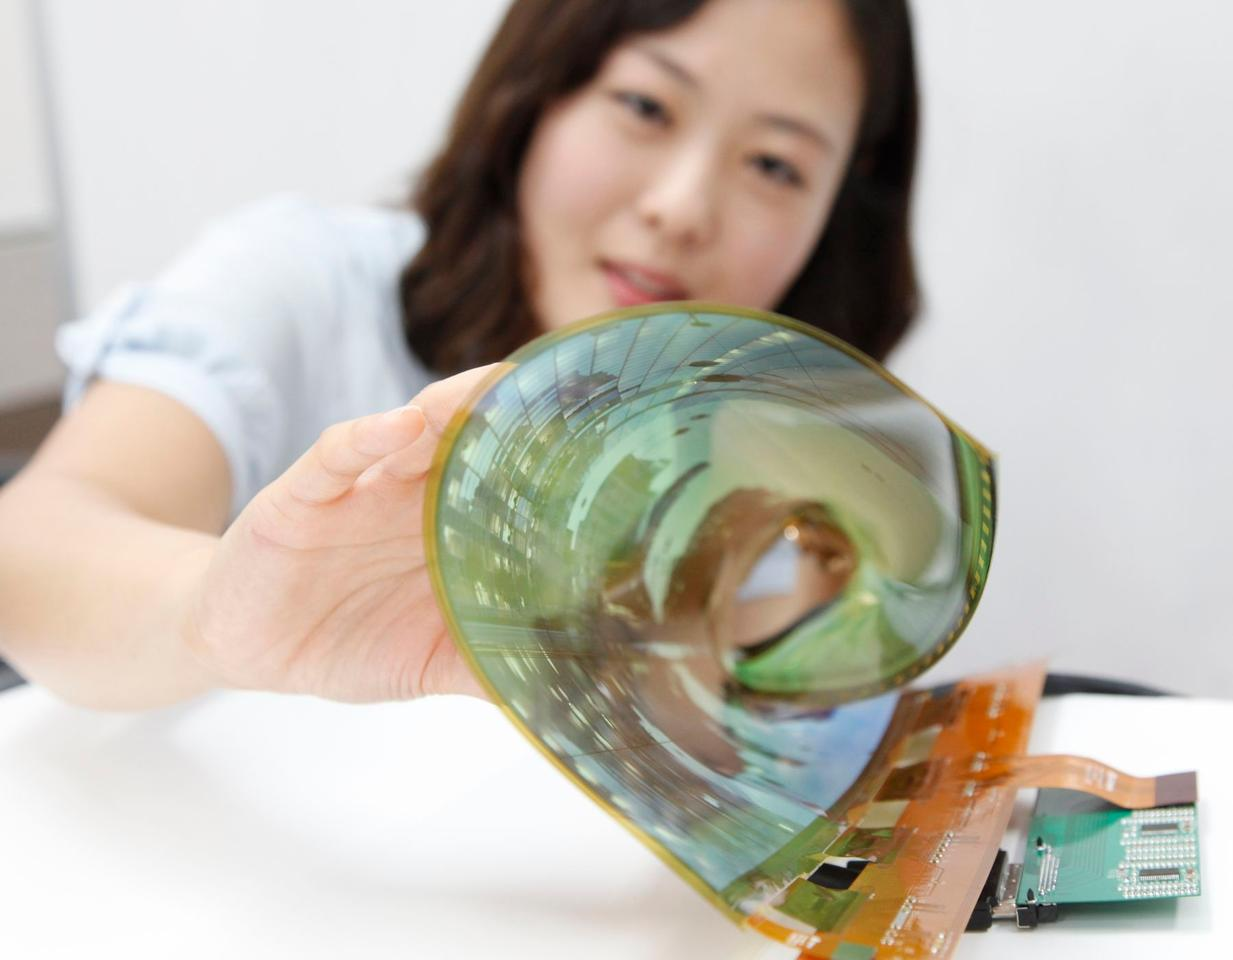 LG Display's new flexible OLED panel can be rolled up to a radius of 3 cm